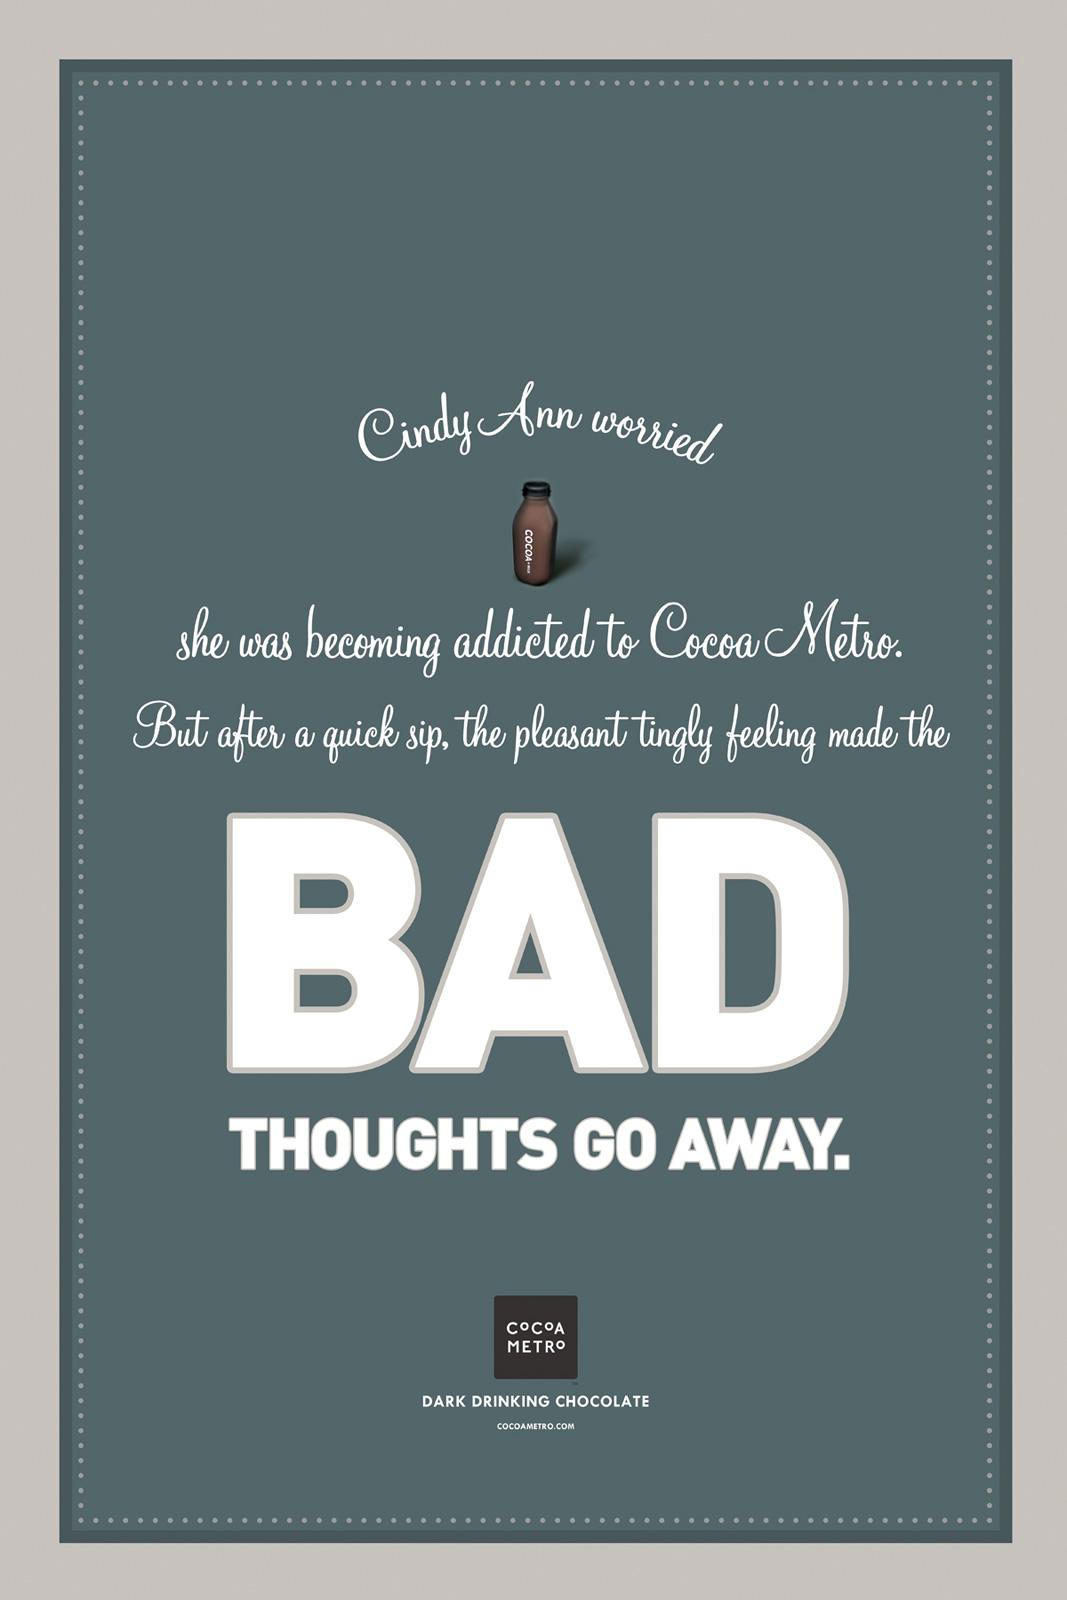 Cocoa Metro Outdoor Ad -  Story poster campaign, Bad